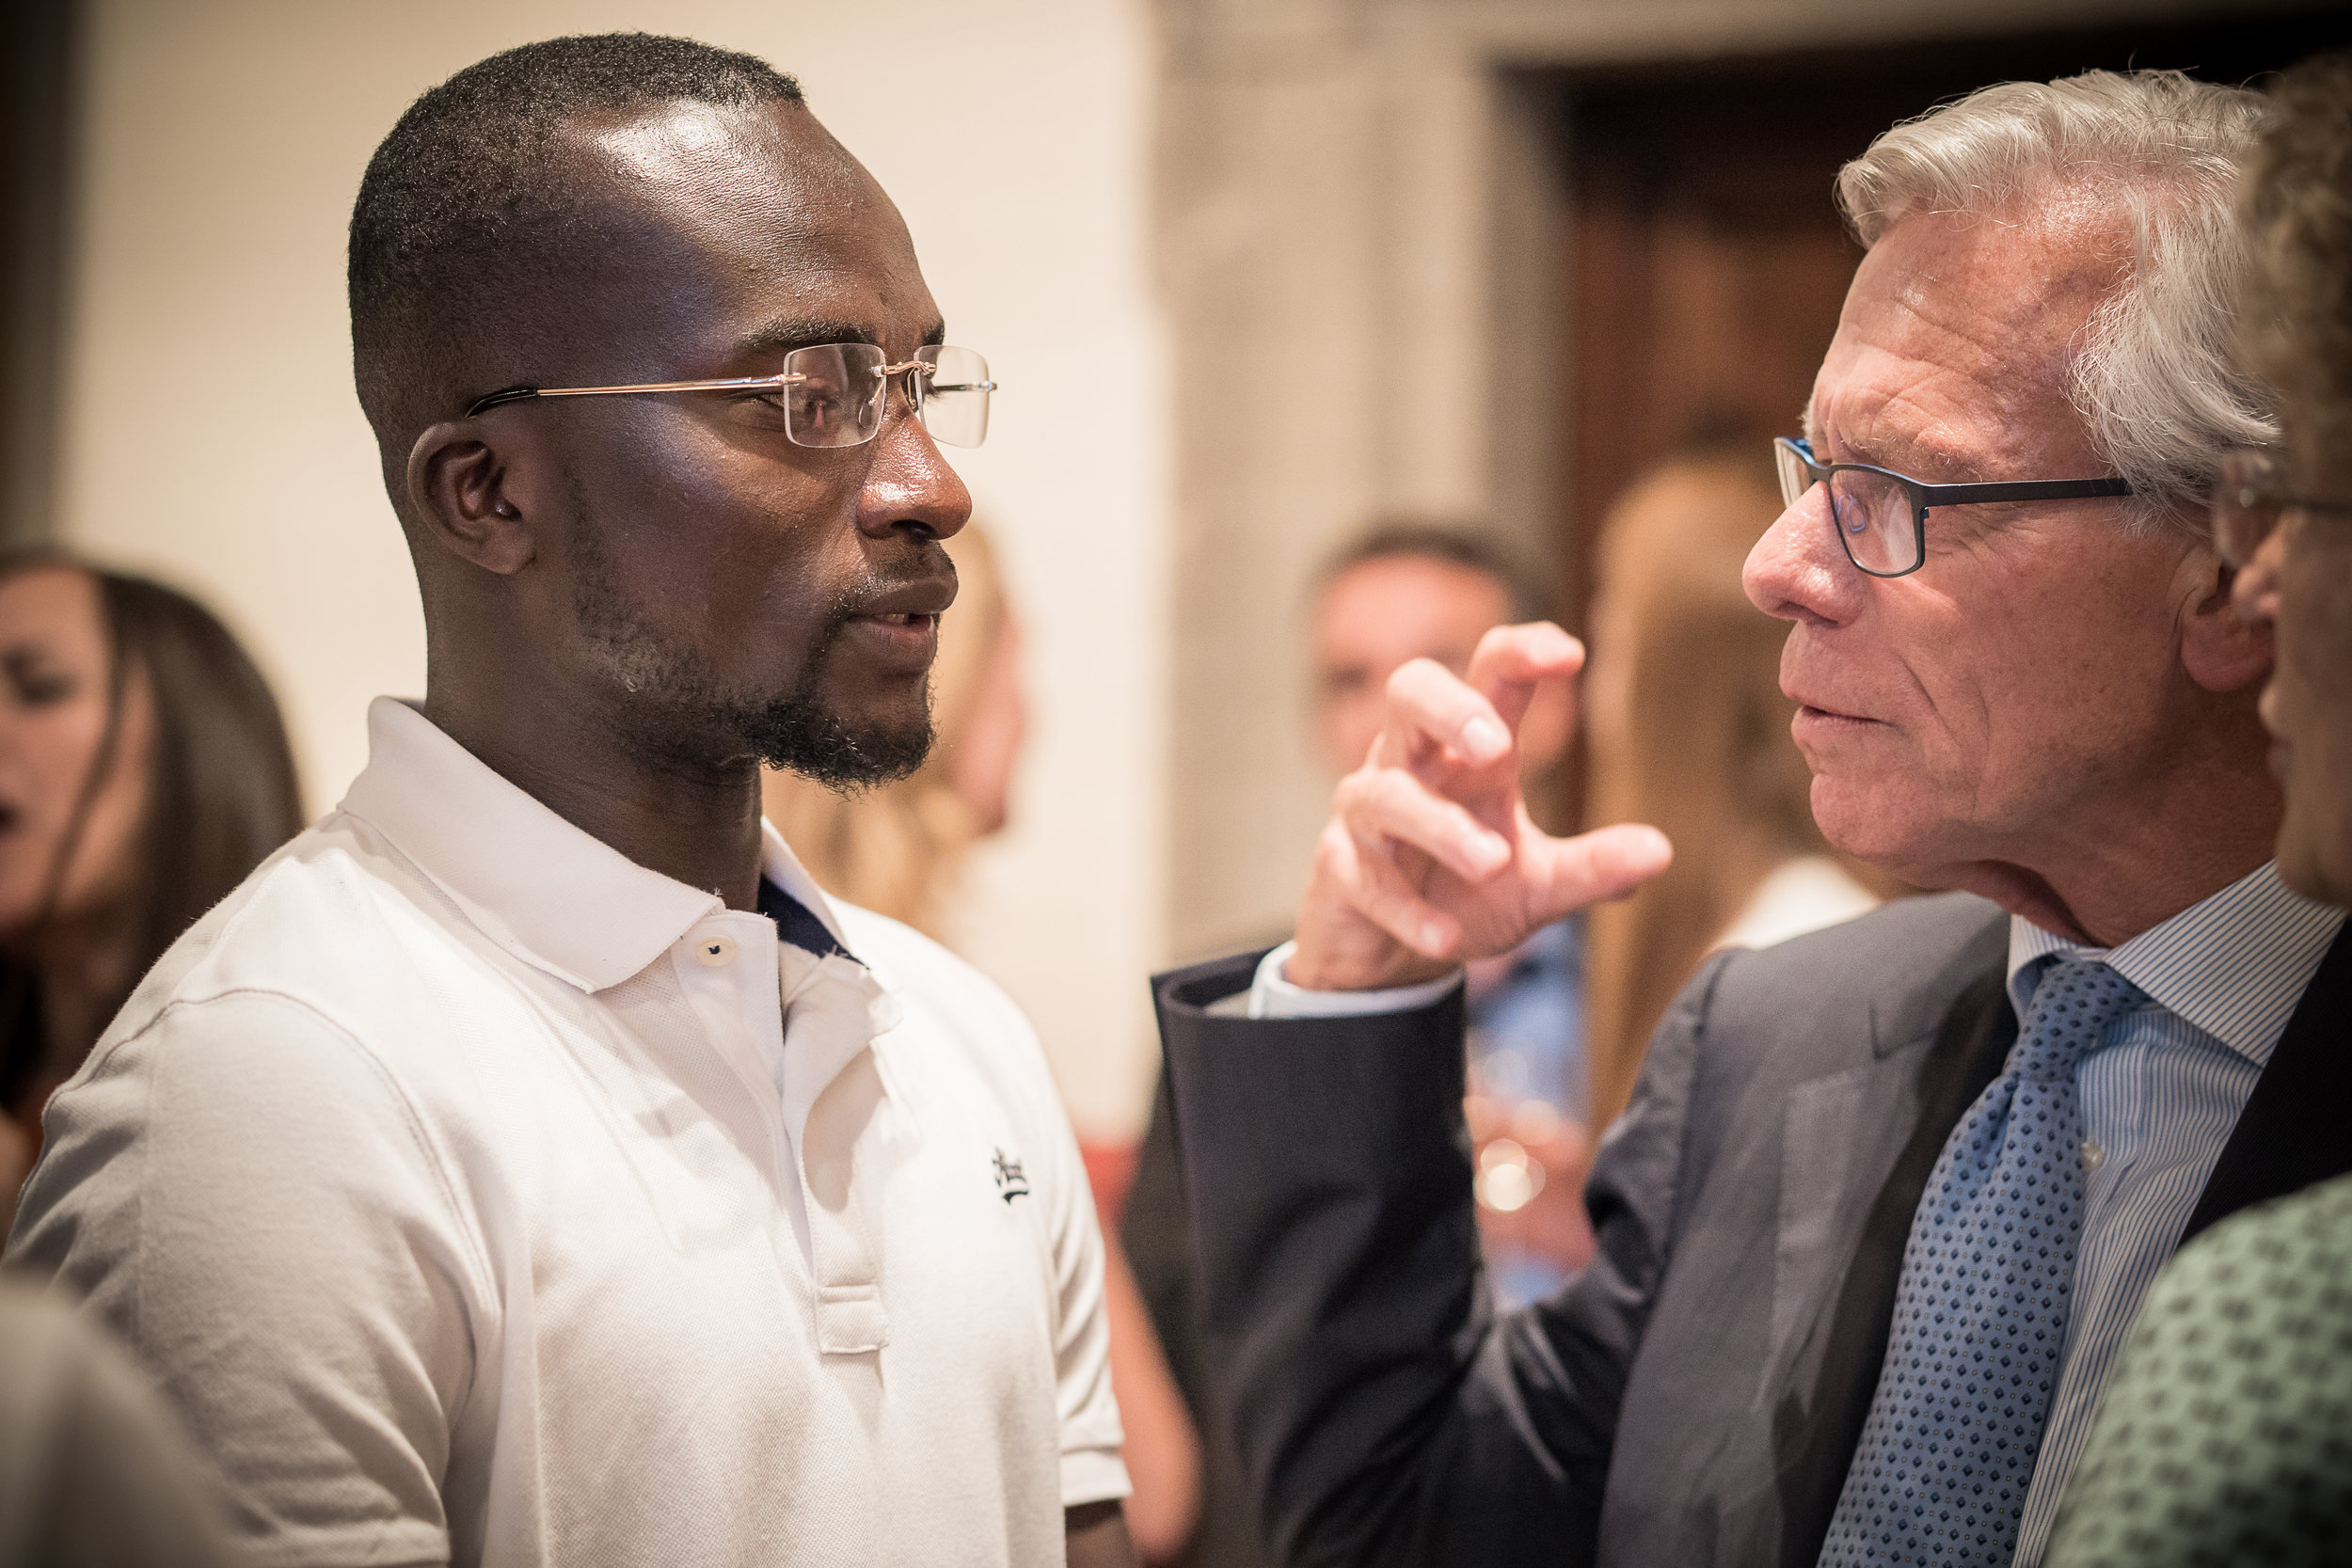 Bakary and Ambassador Knut Vollebaek, former Norwegian Foreign Minister talk at the Embassy of Switzerland, Rome. 11 June 2018. Image courtesy of  ICMP .